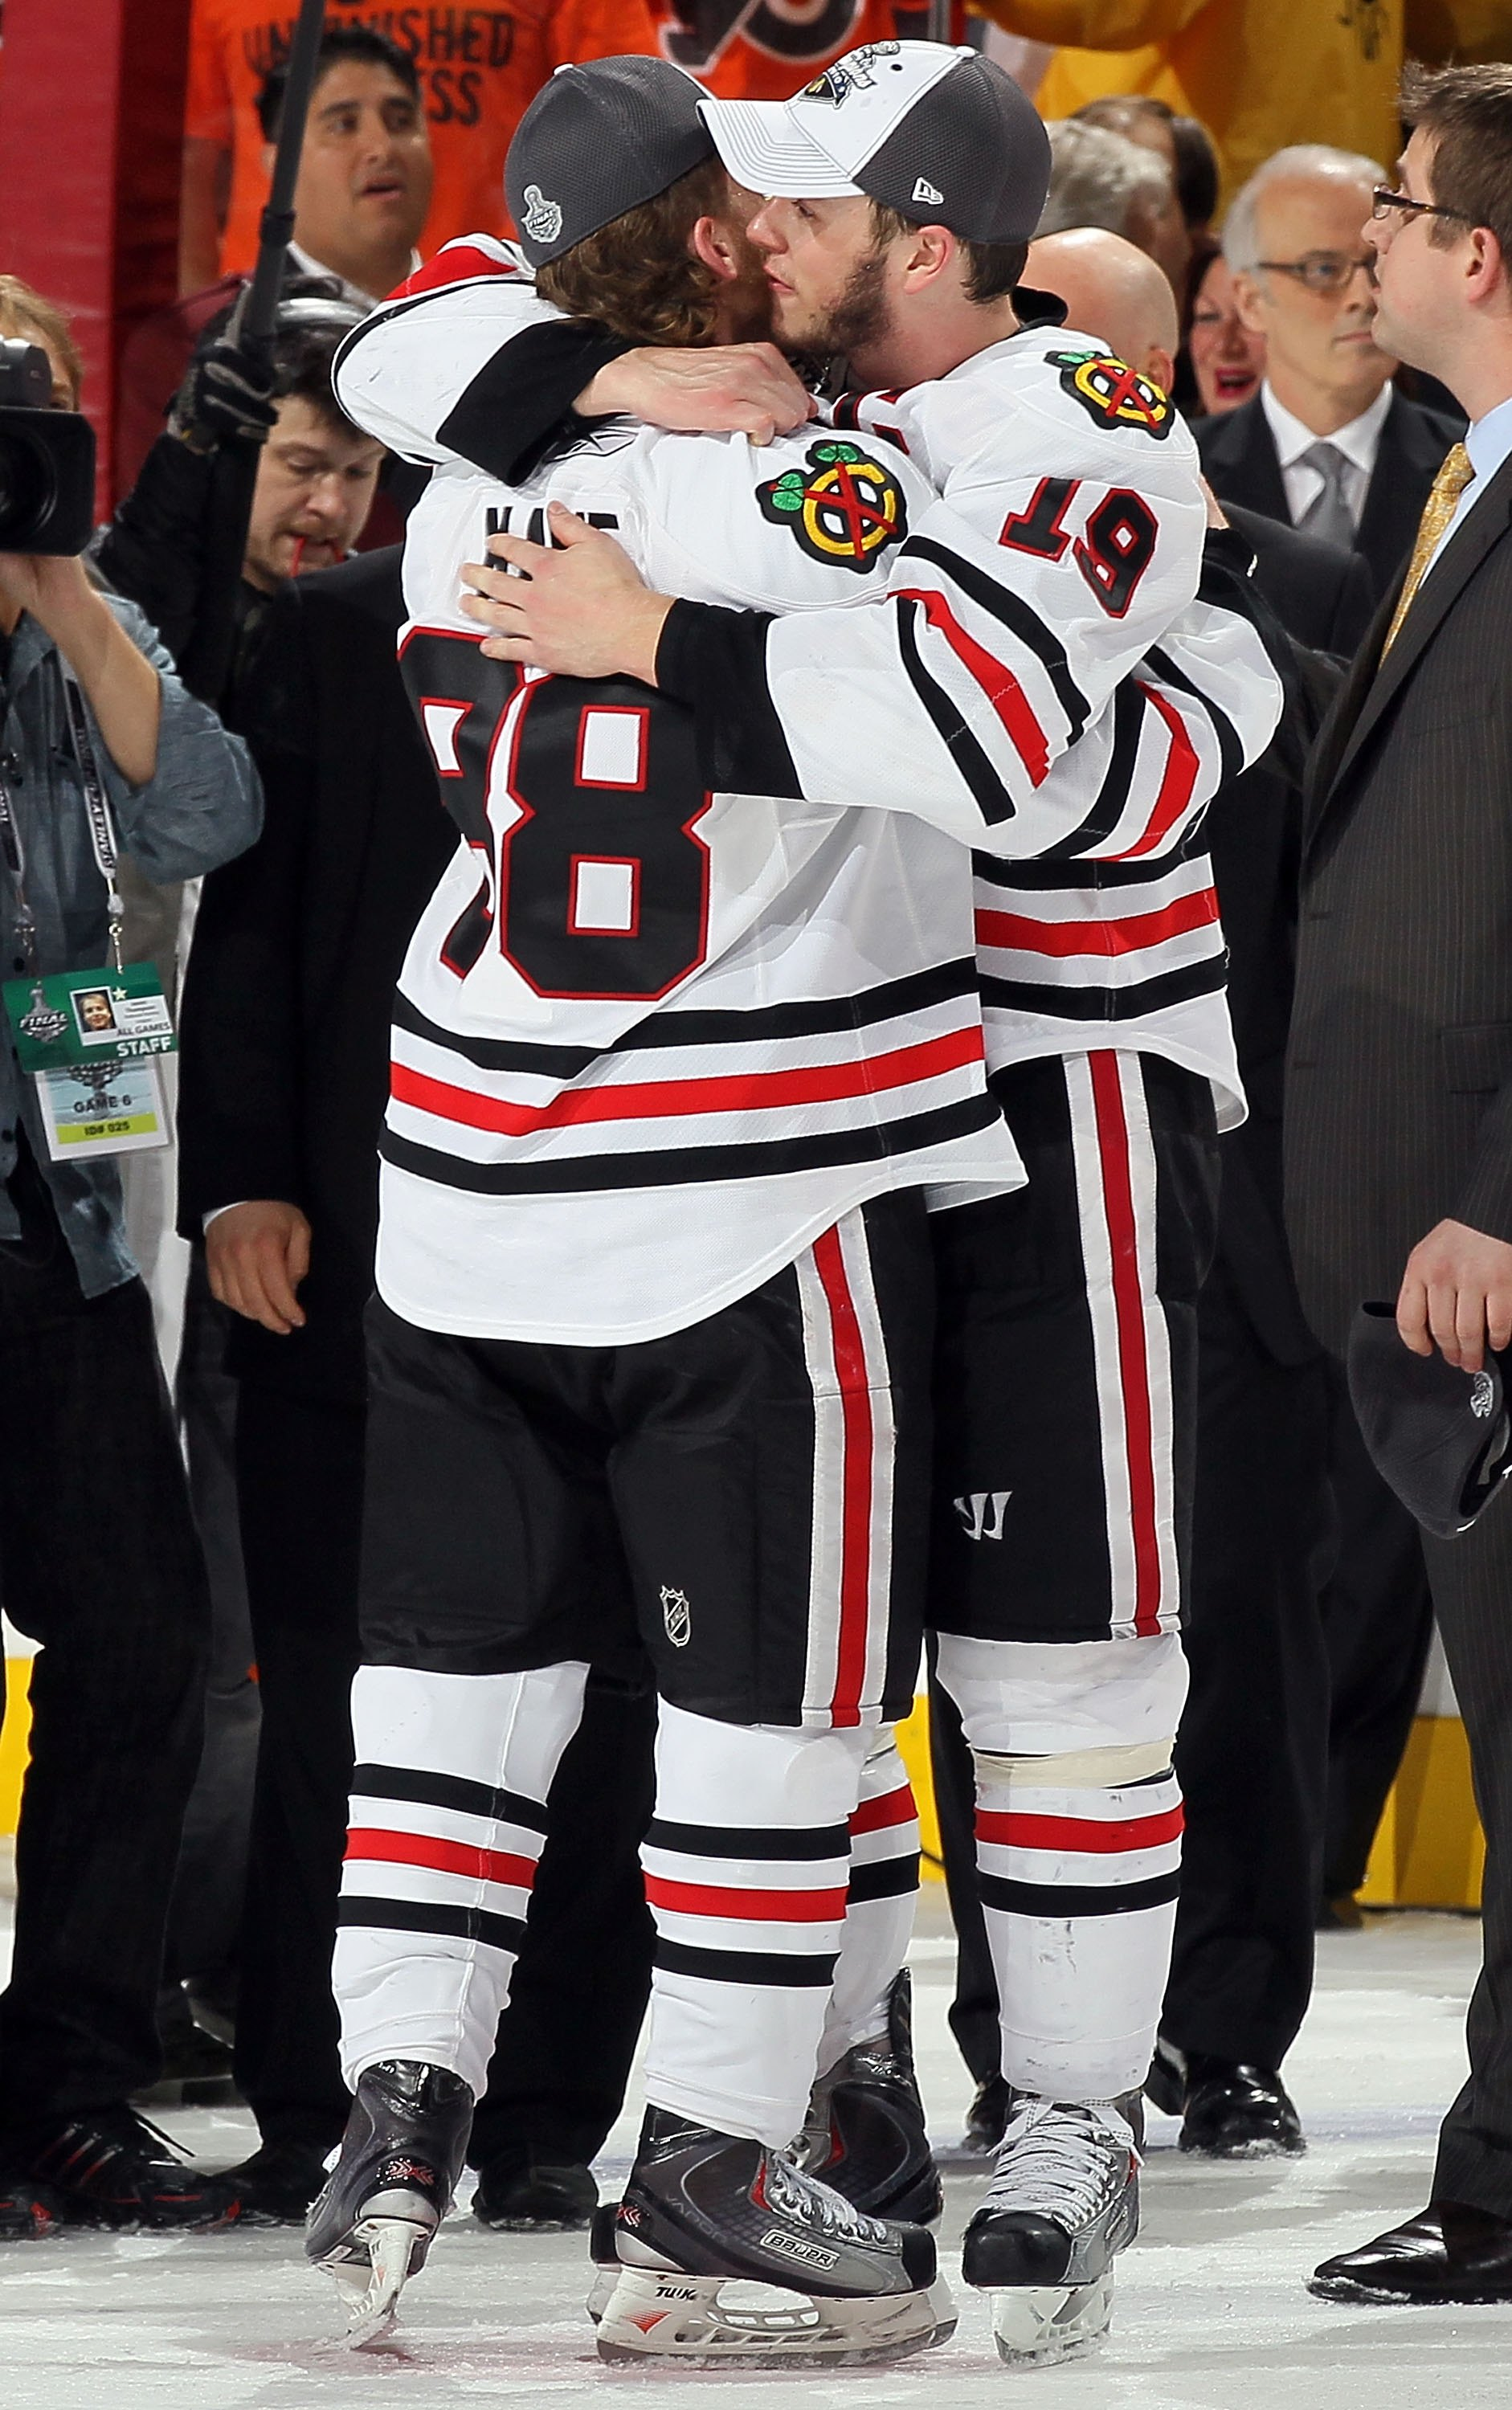 PHILADELPHIA - JUNE 09:  Jonathan Toews #19 and Patrick Kane #88 of the Chicago Blackhawks celebrate after defeating the Philadelphia Flyers 4-3 to win the Stanley Cup in Game Six of the 2010 NHL Stanley Cup Final at the Wachovia Center on June 9, 2010 in